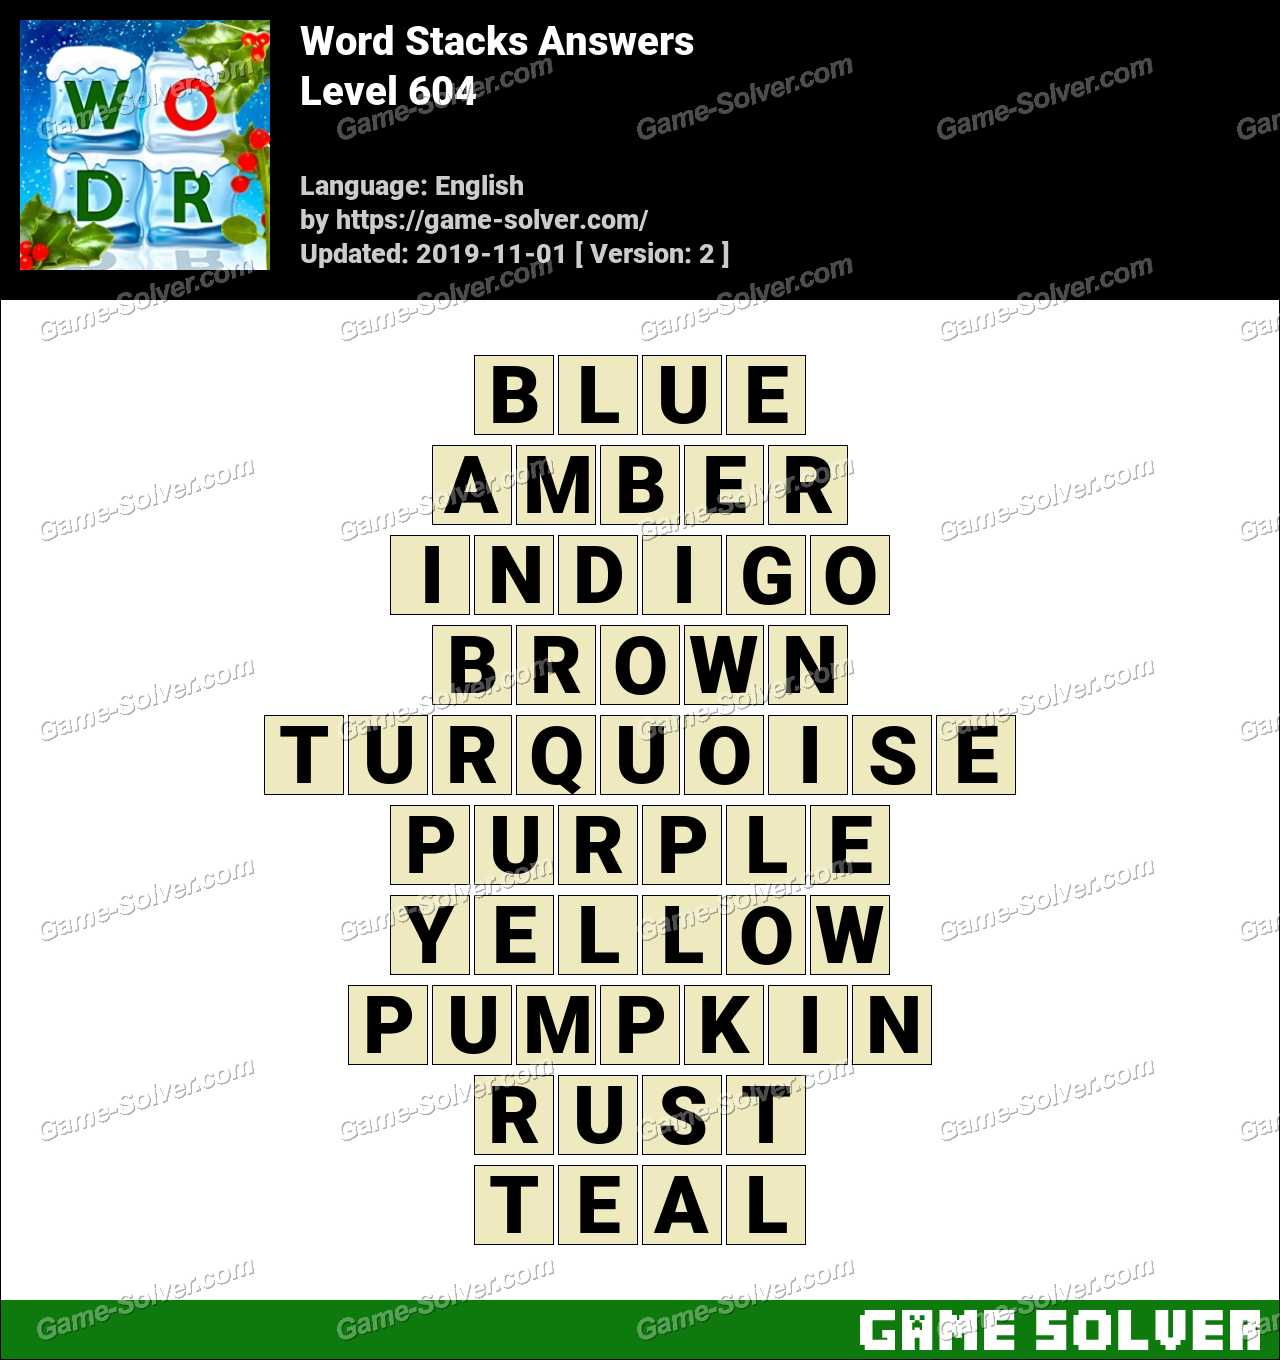 Word Stacks Level 604 Answers